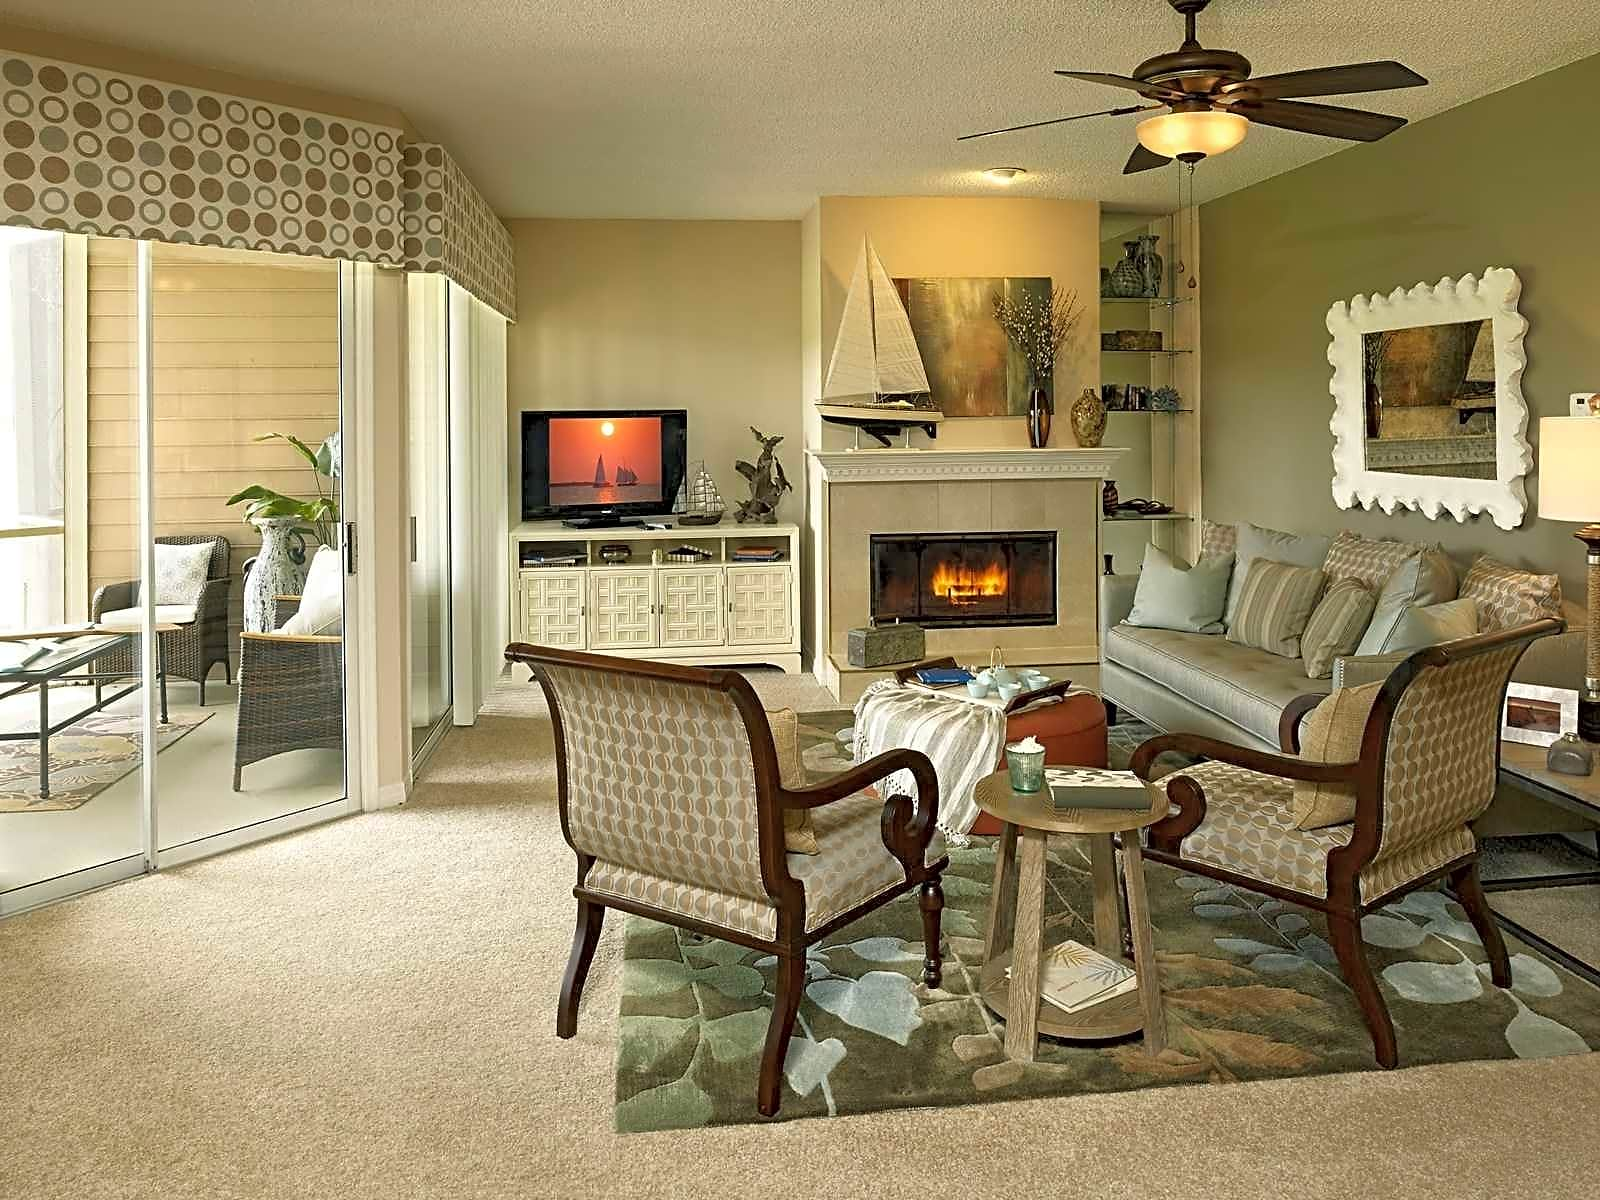 Living room with screened patio or balcony